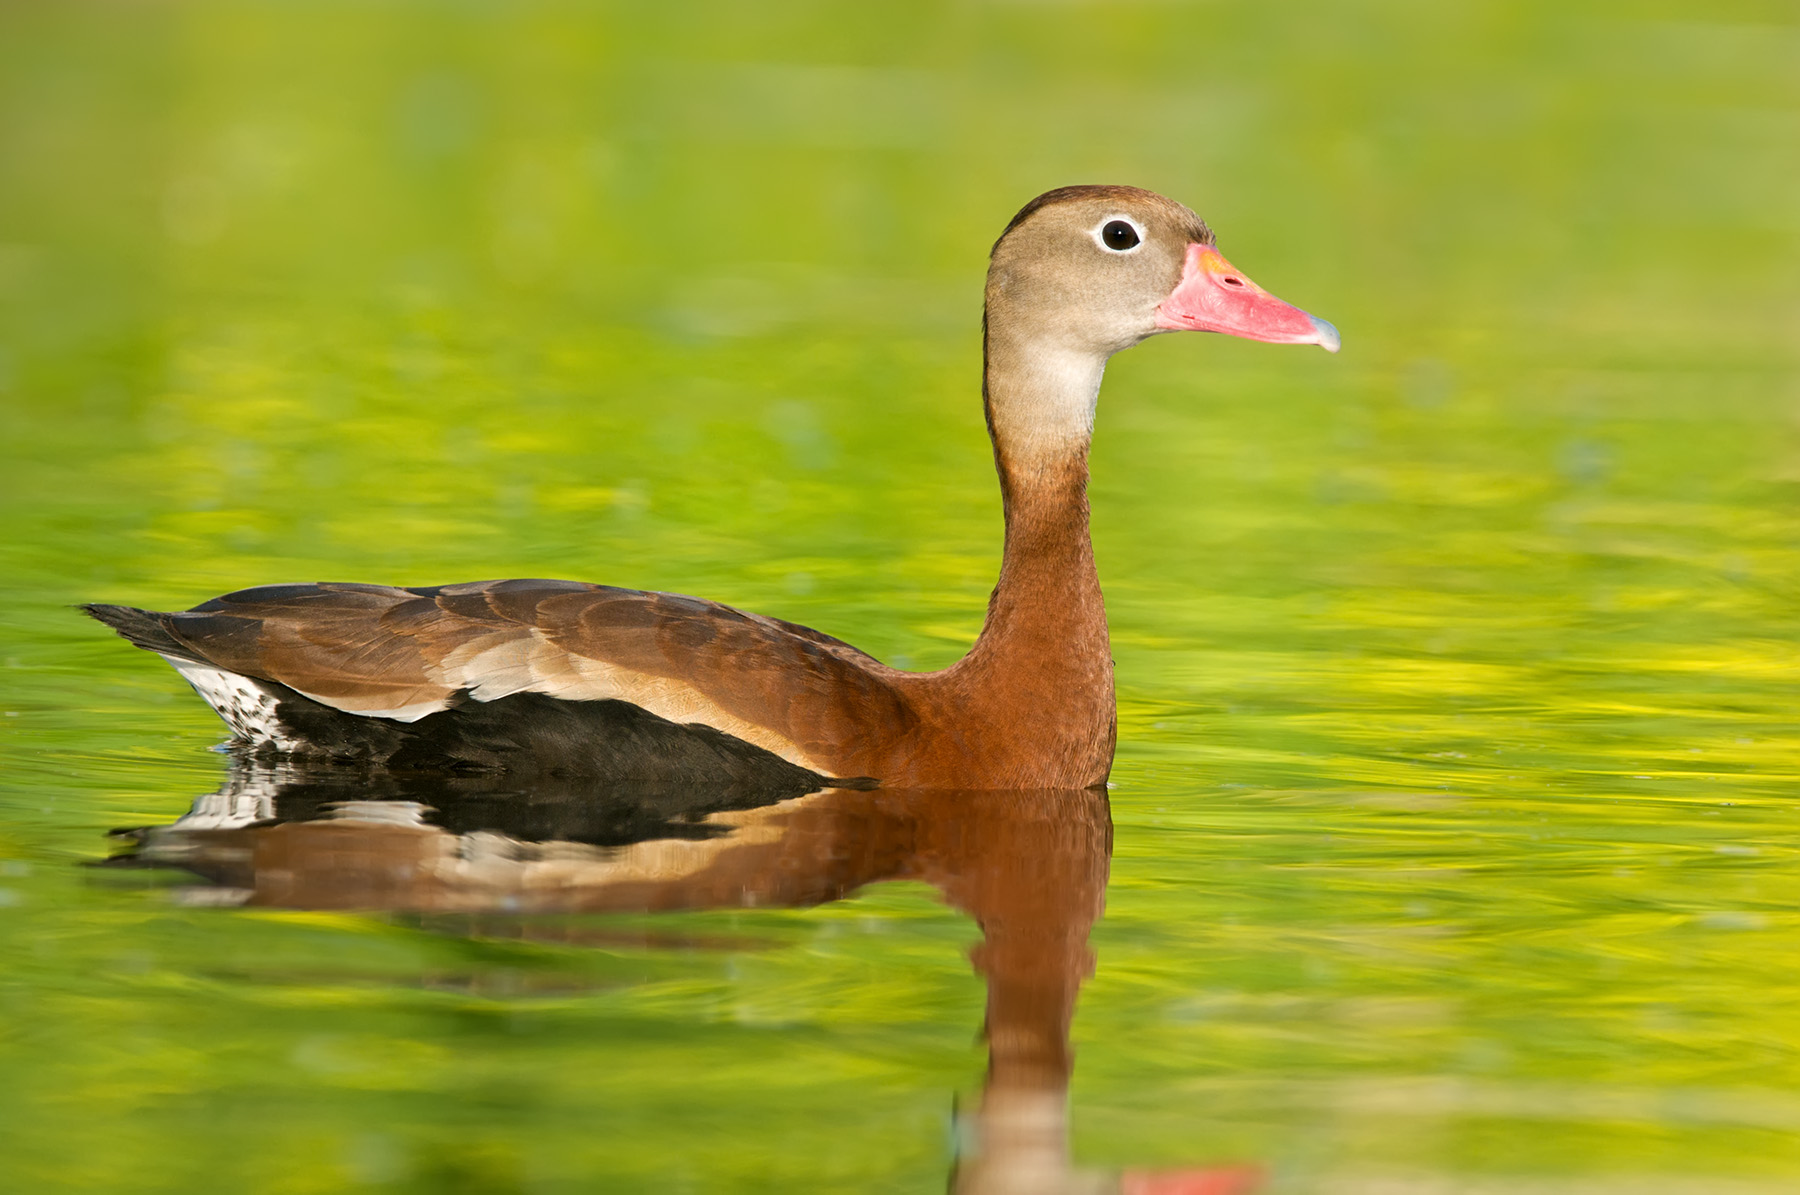 Black bellied whistling duck slideshow